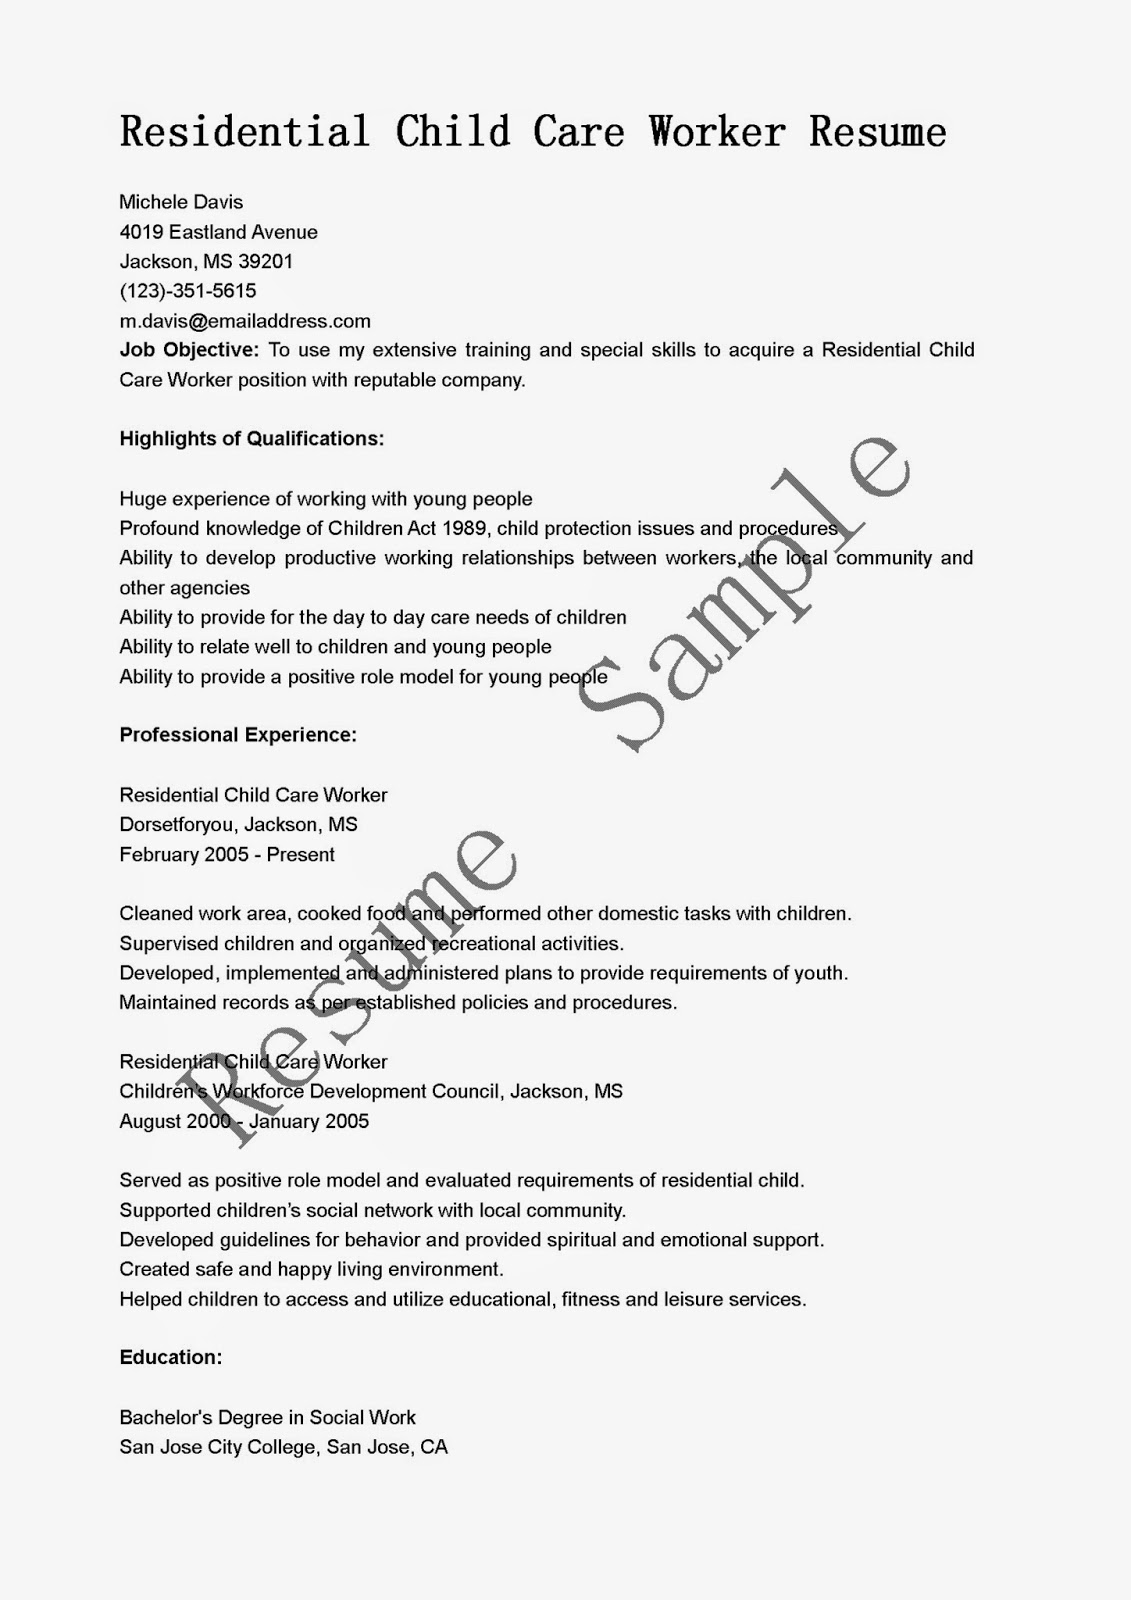 resume child care worker - Etame.mibawa.co